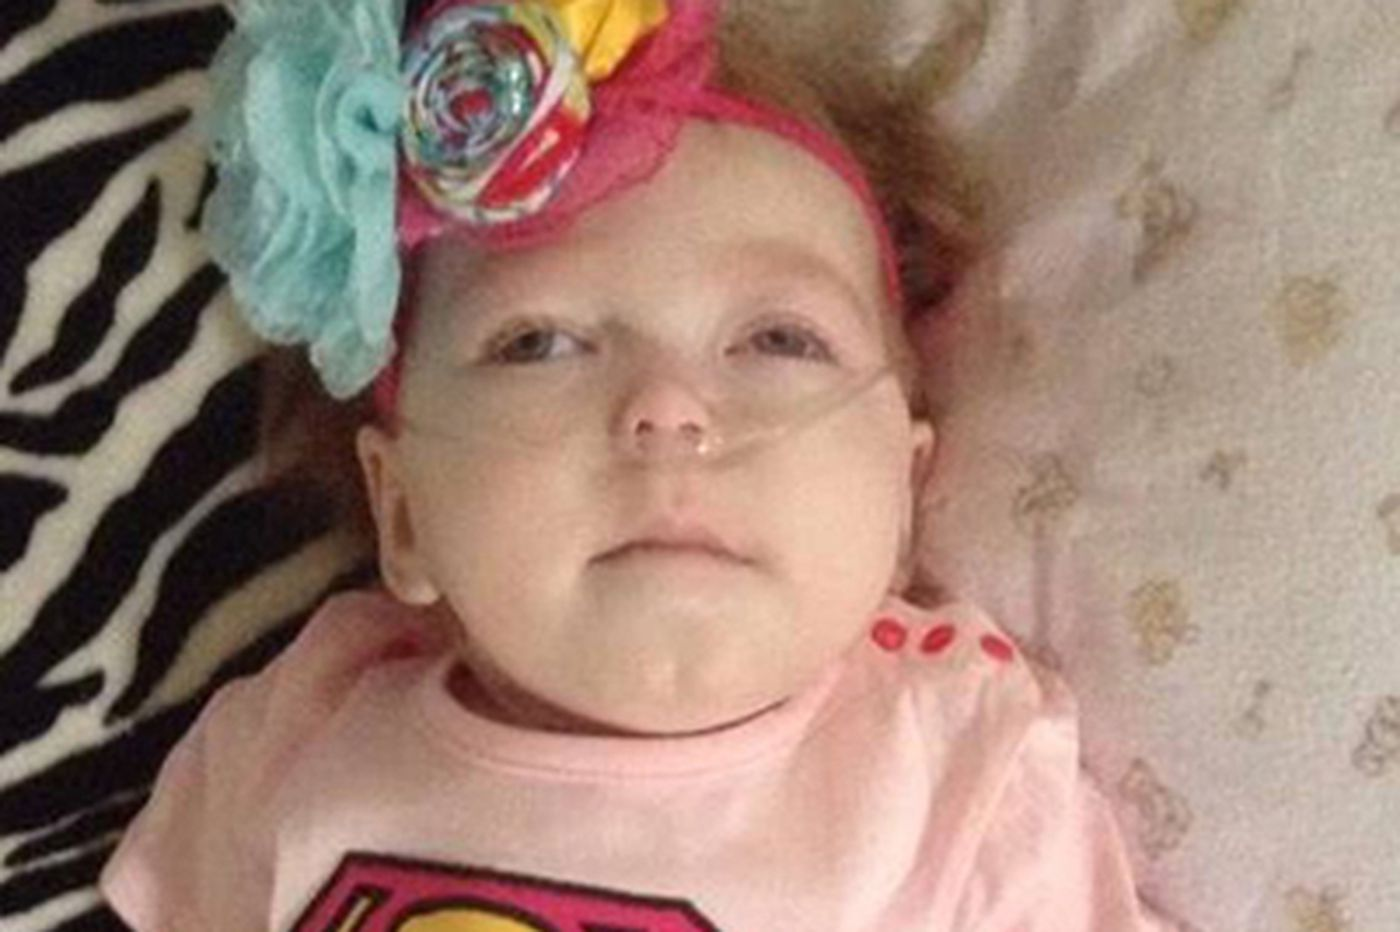 Baby who inspired new Pa. screening law dies